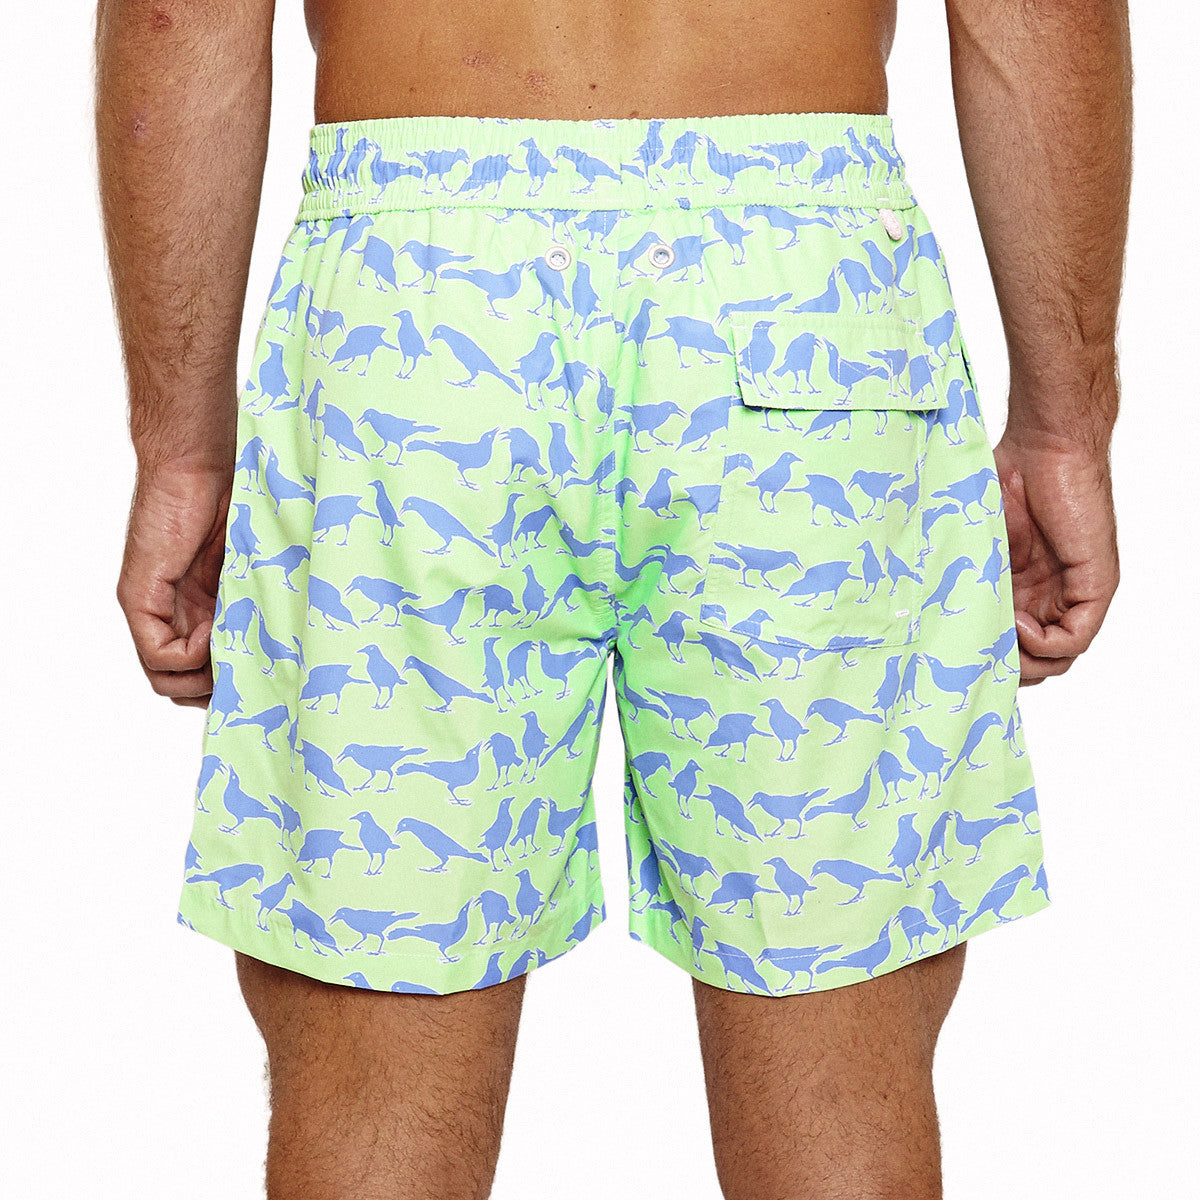 Mens Trunks (Grackle Green) Back